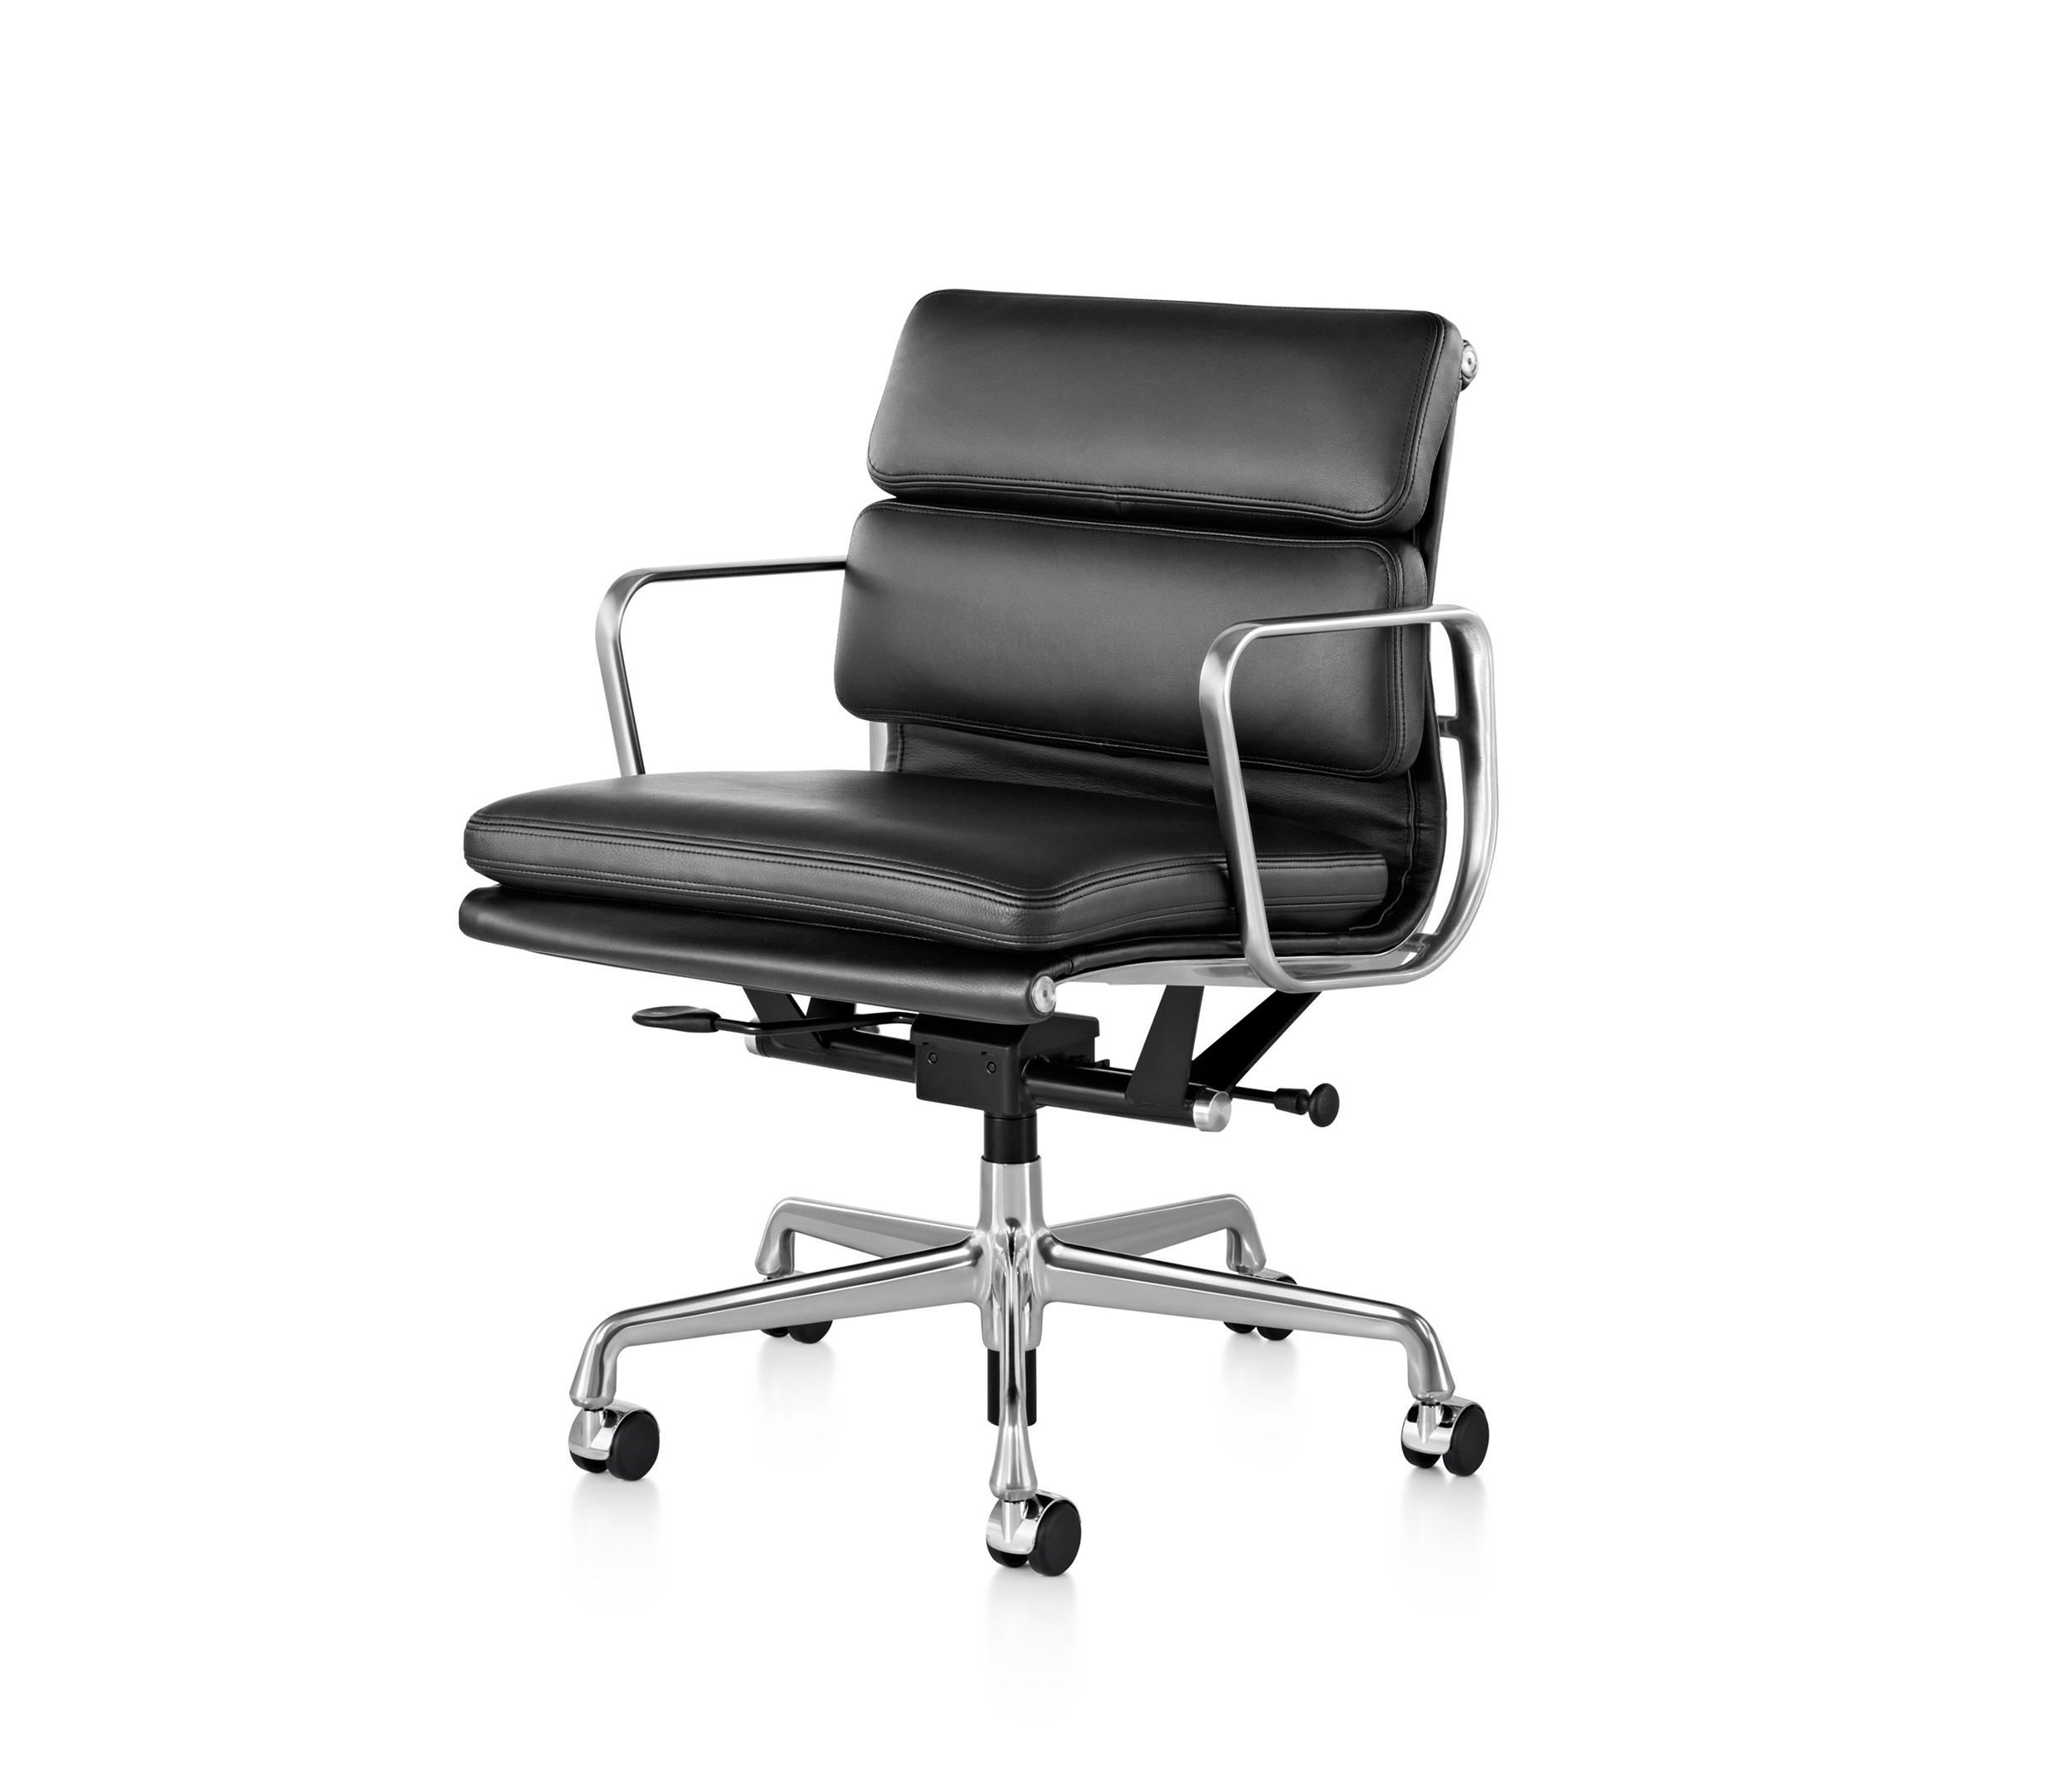 EAMES ALUMINUM GROUP SOFT PAD MANAGEMENT CHAIR Management chairs